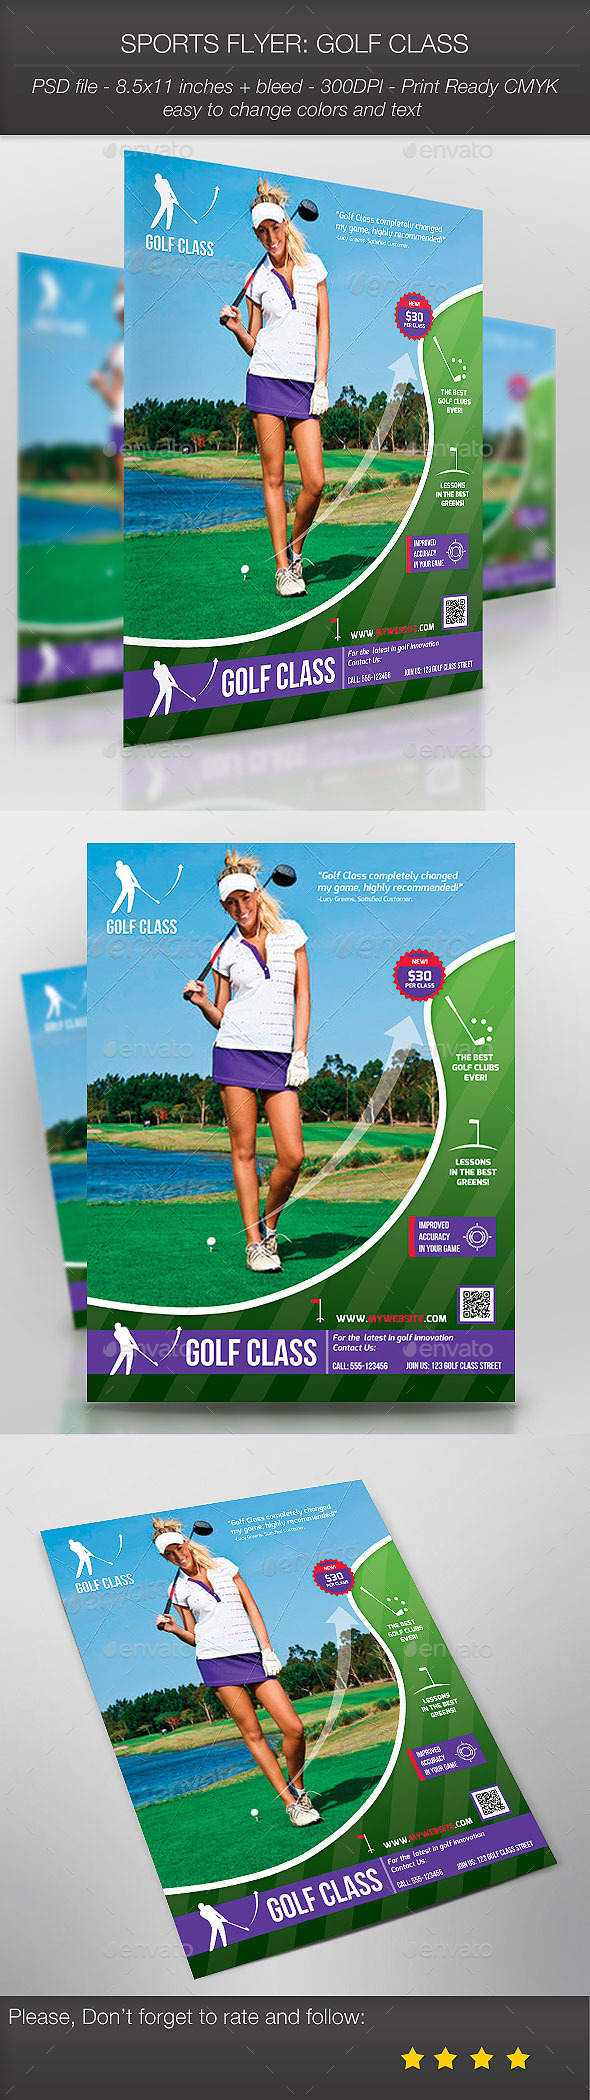 GraphicRiver Sports Flyer Golf Class 9179286